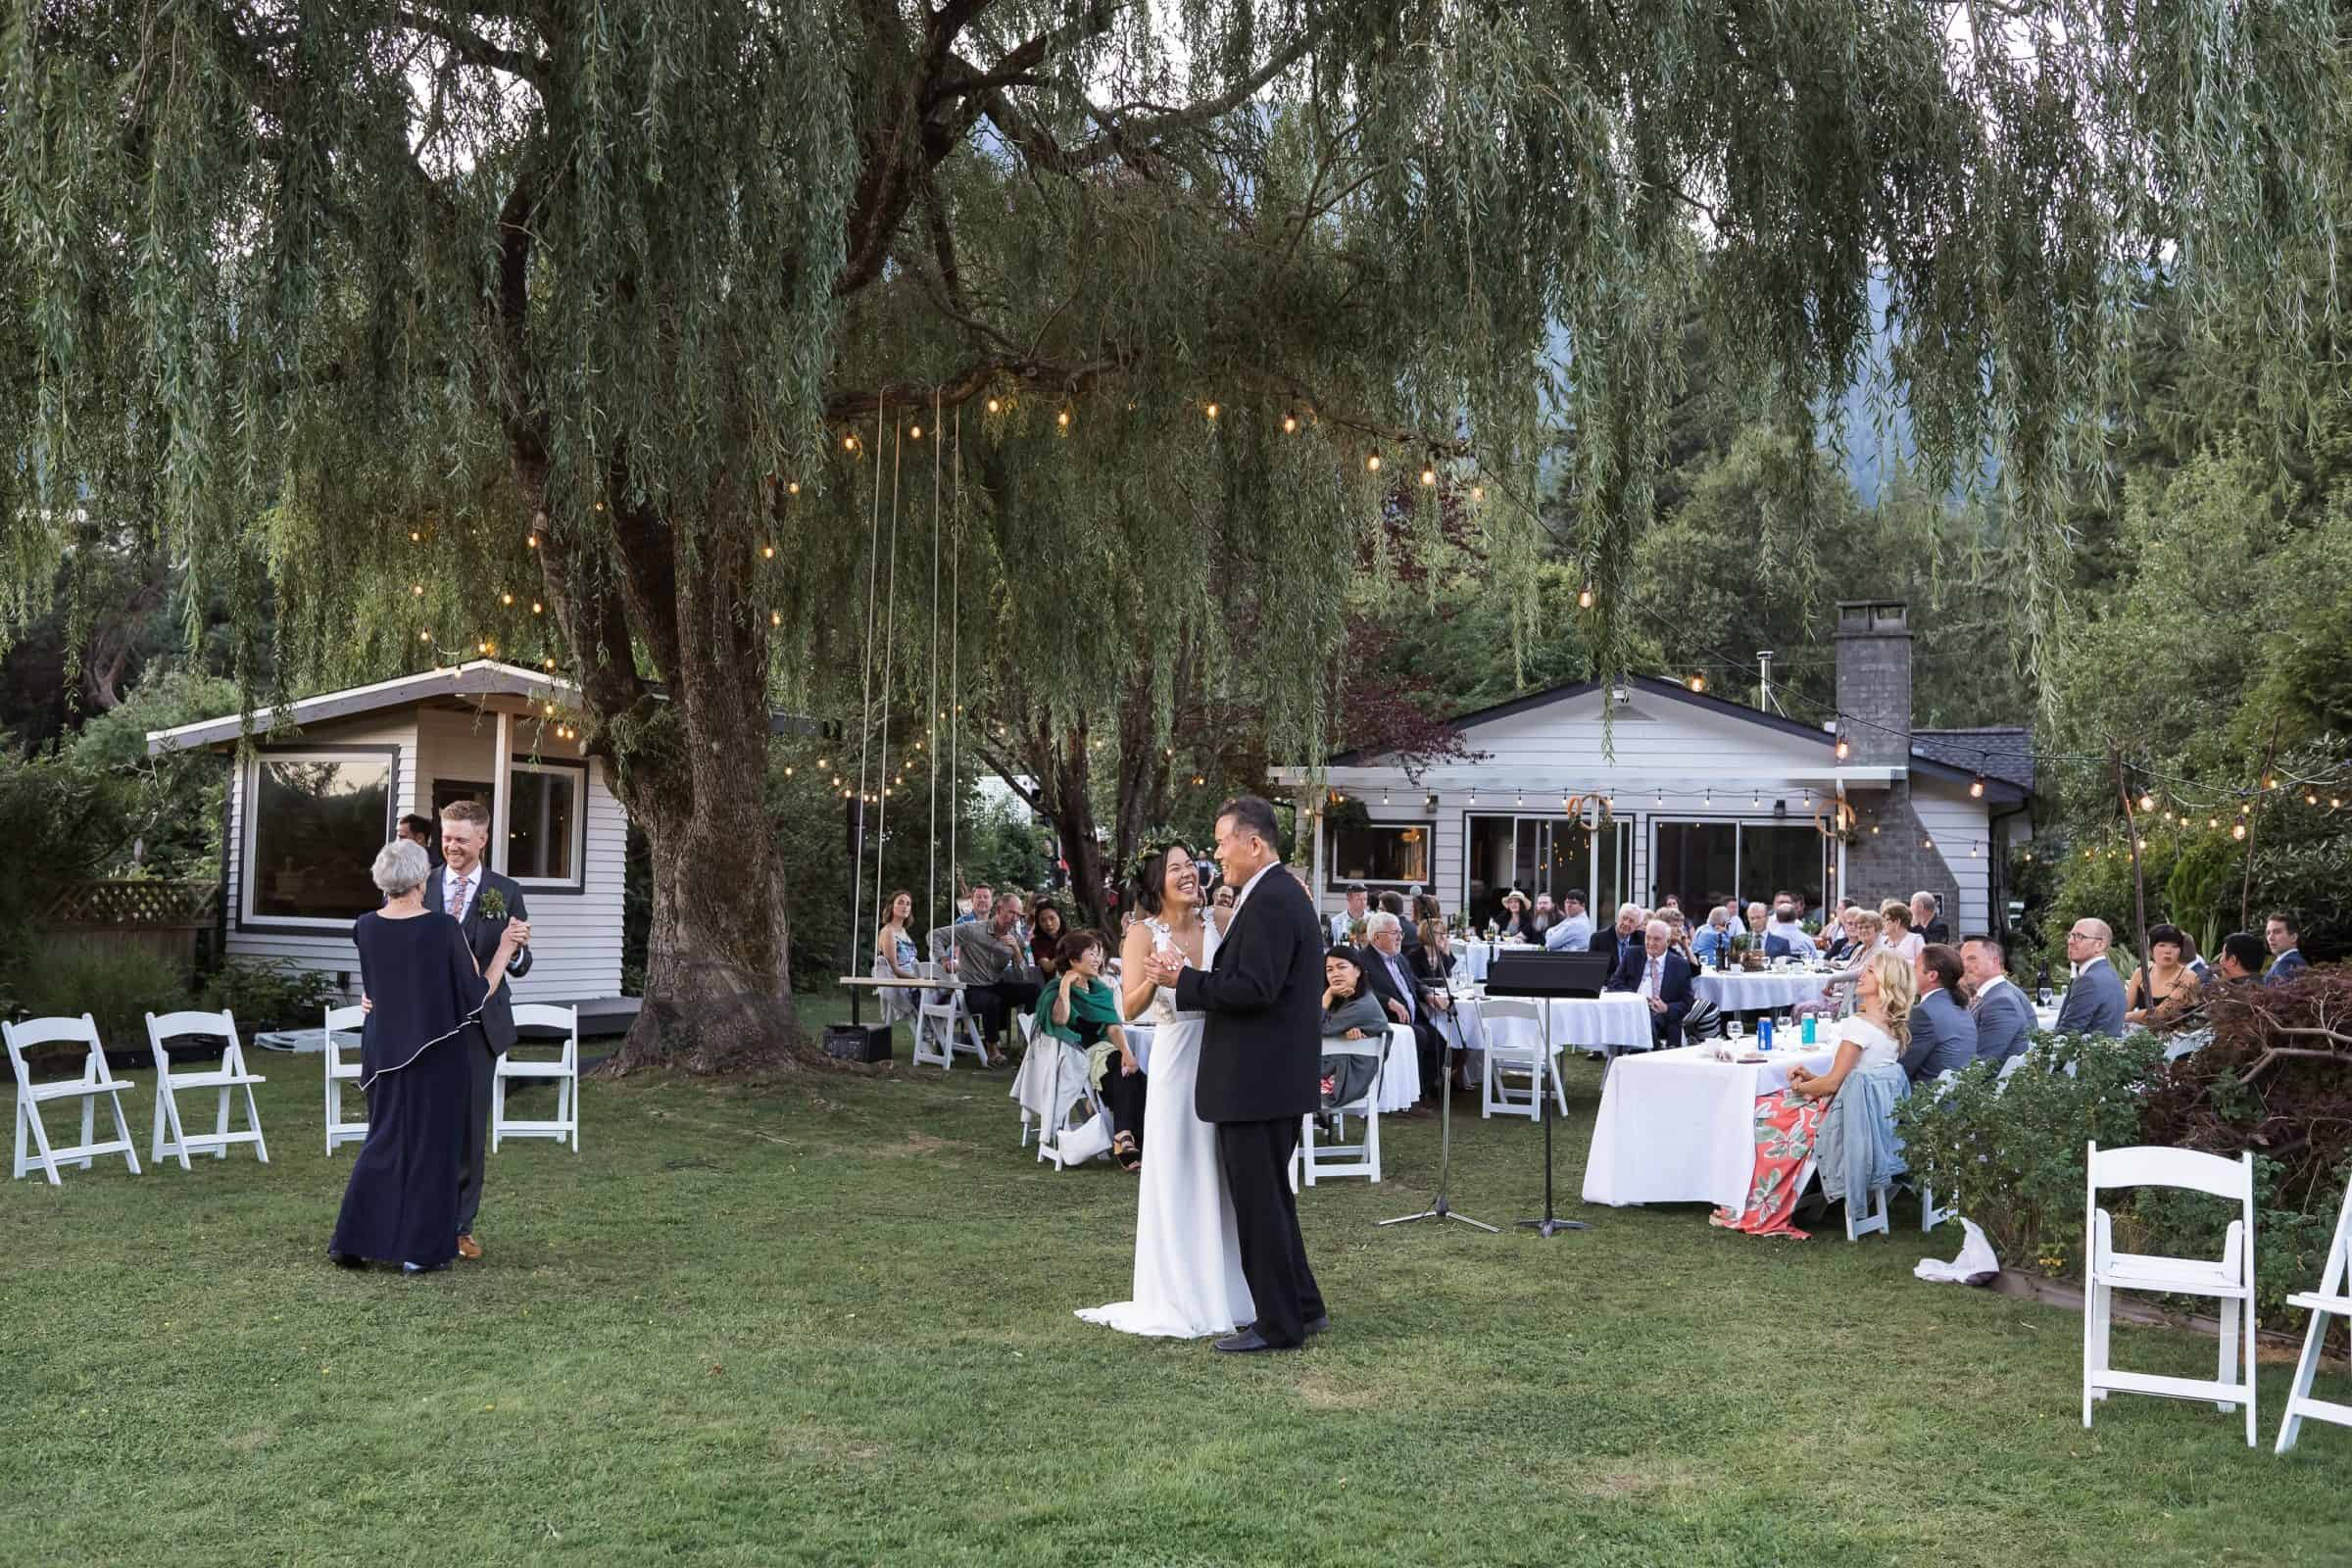 mother-son and father-daughter dances at wedding with guest in background in yard